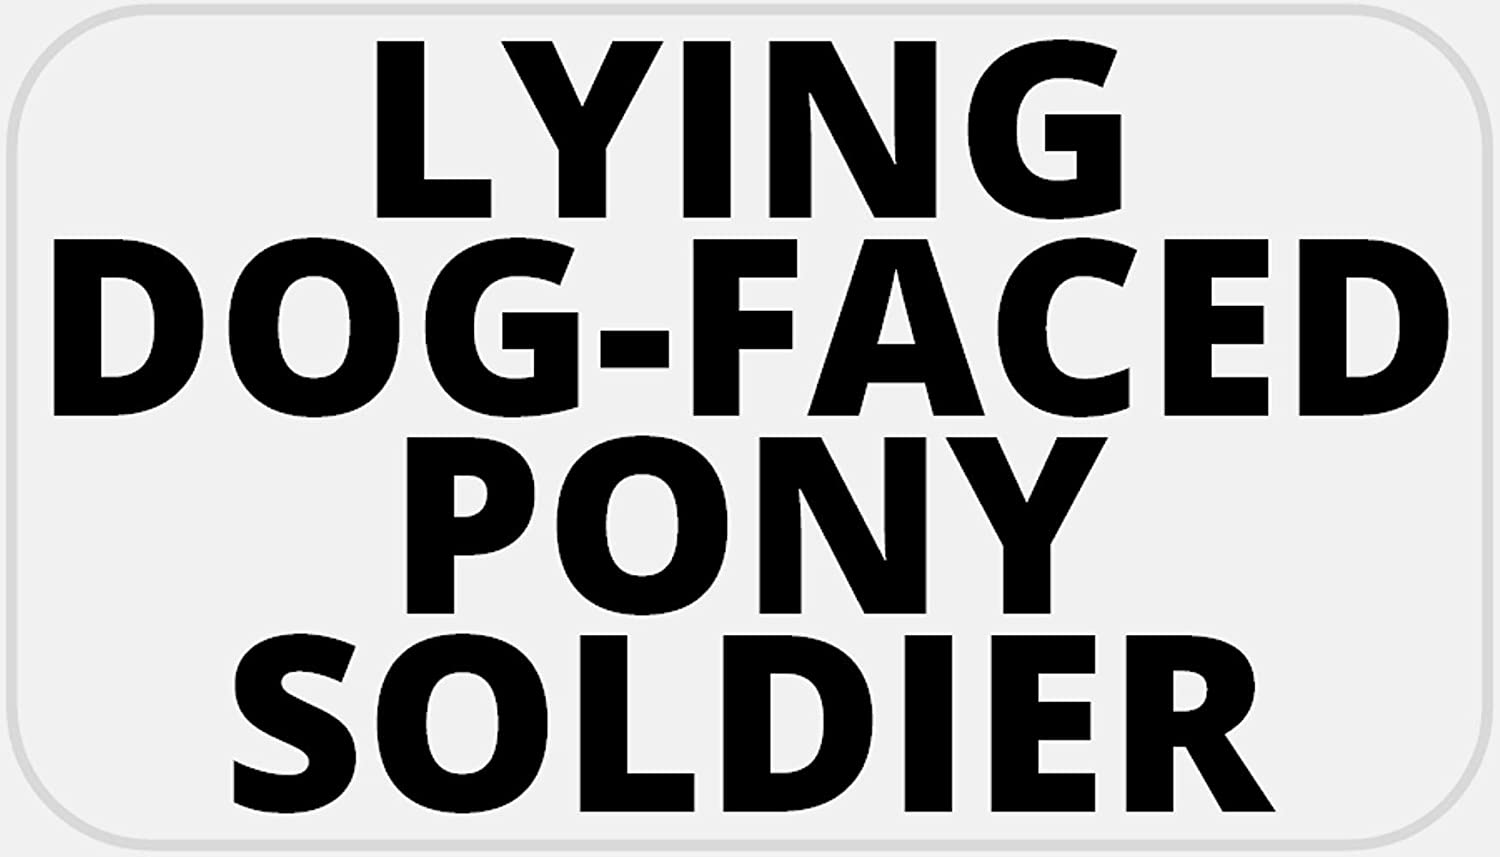 100 Stickers Pack 2.25 x 1.25 inches Joe Biden Lying Dog-Faced Pony Soldier